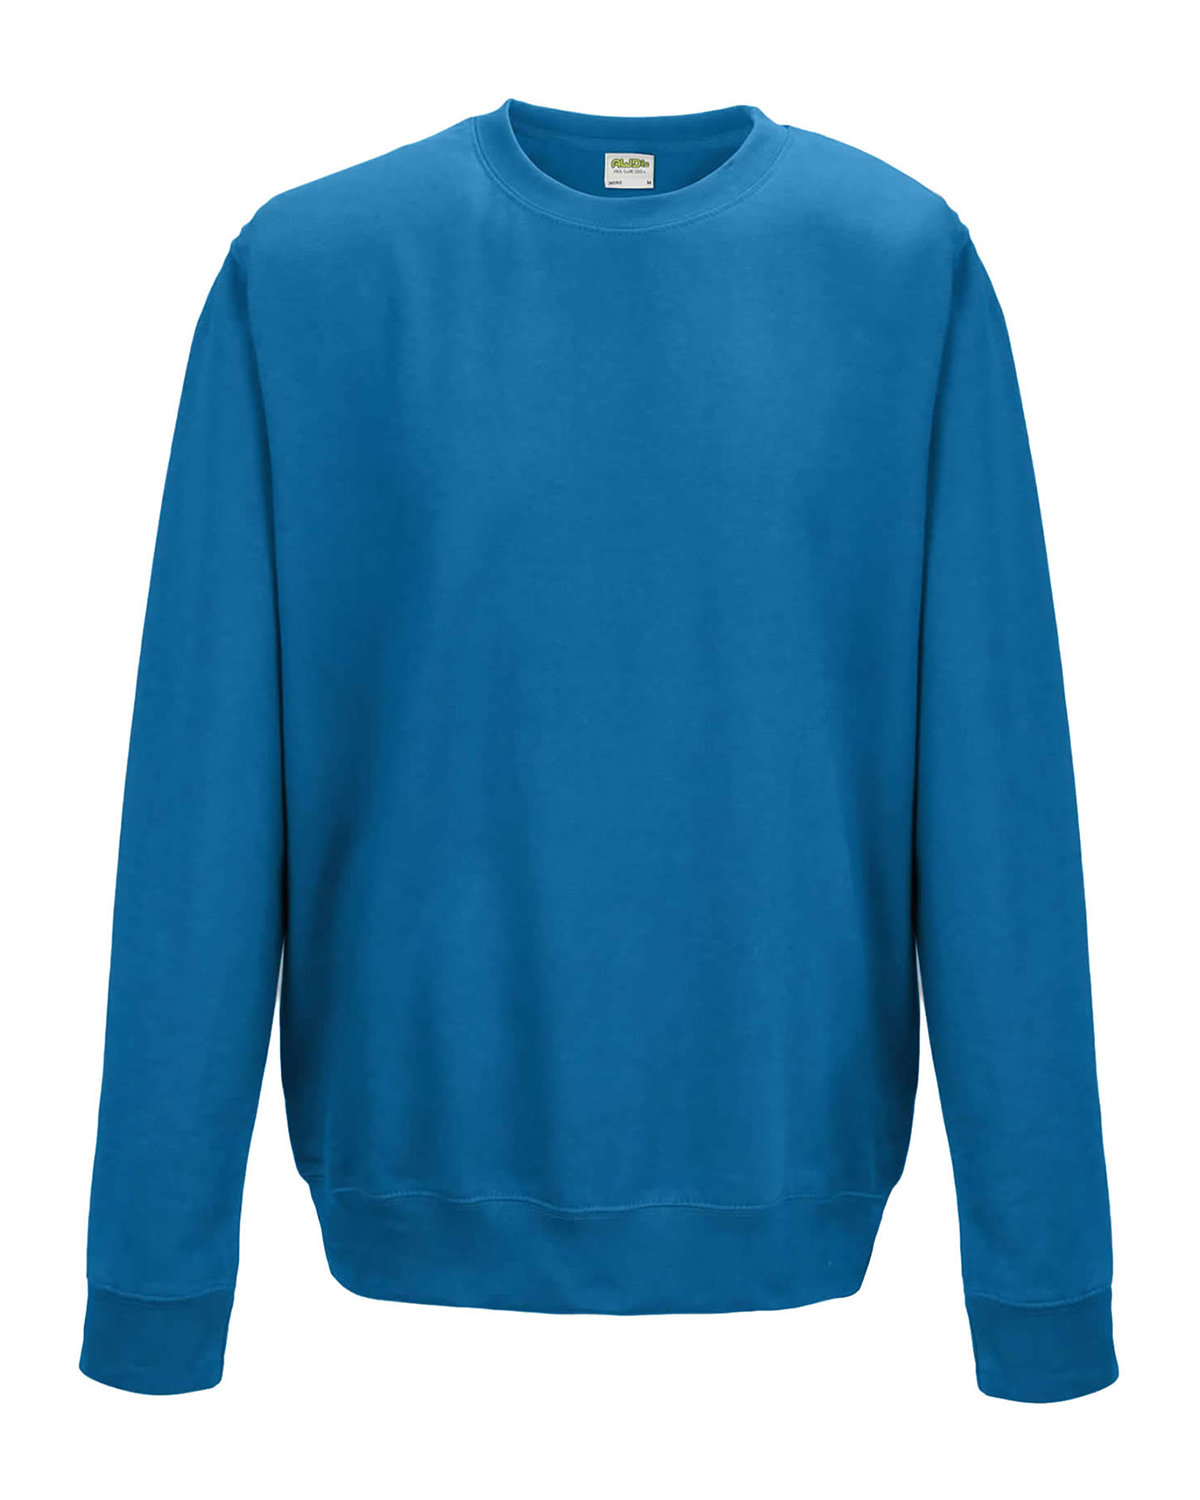 Just Hoods By AWDis Adult 80/20 Midweight College Crewneck Sweatshirt SAPPHIRE BLUE